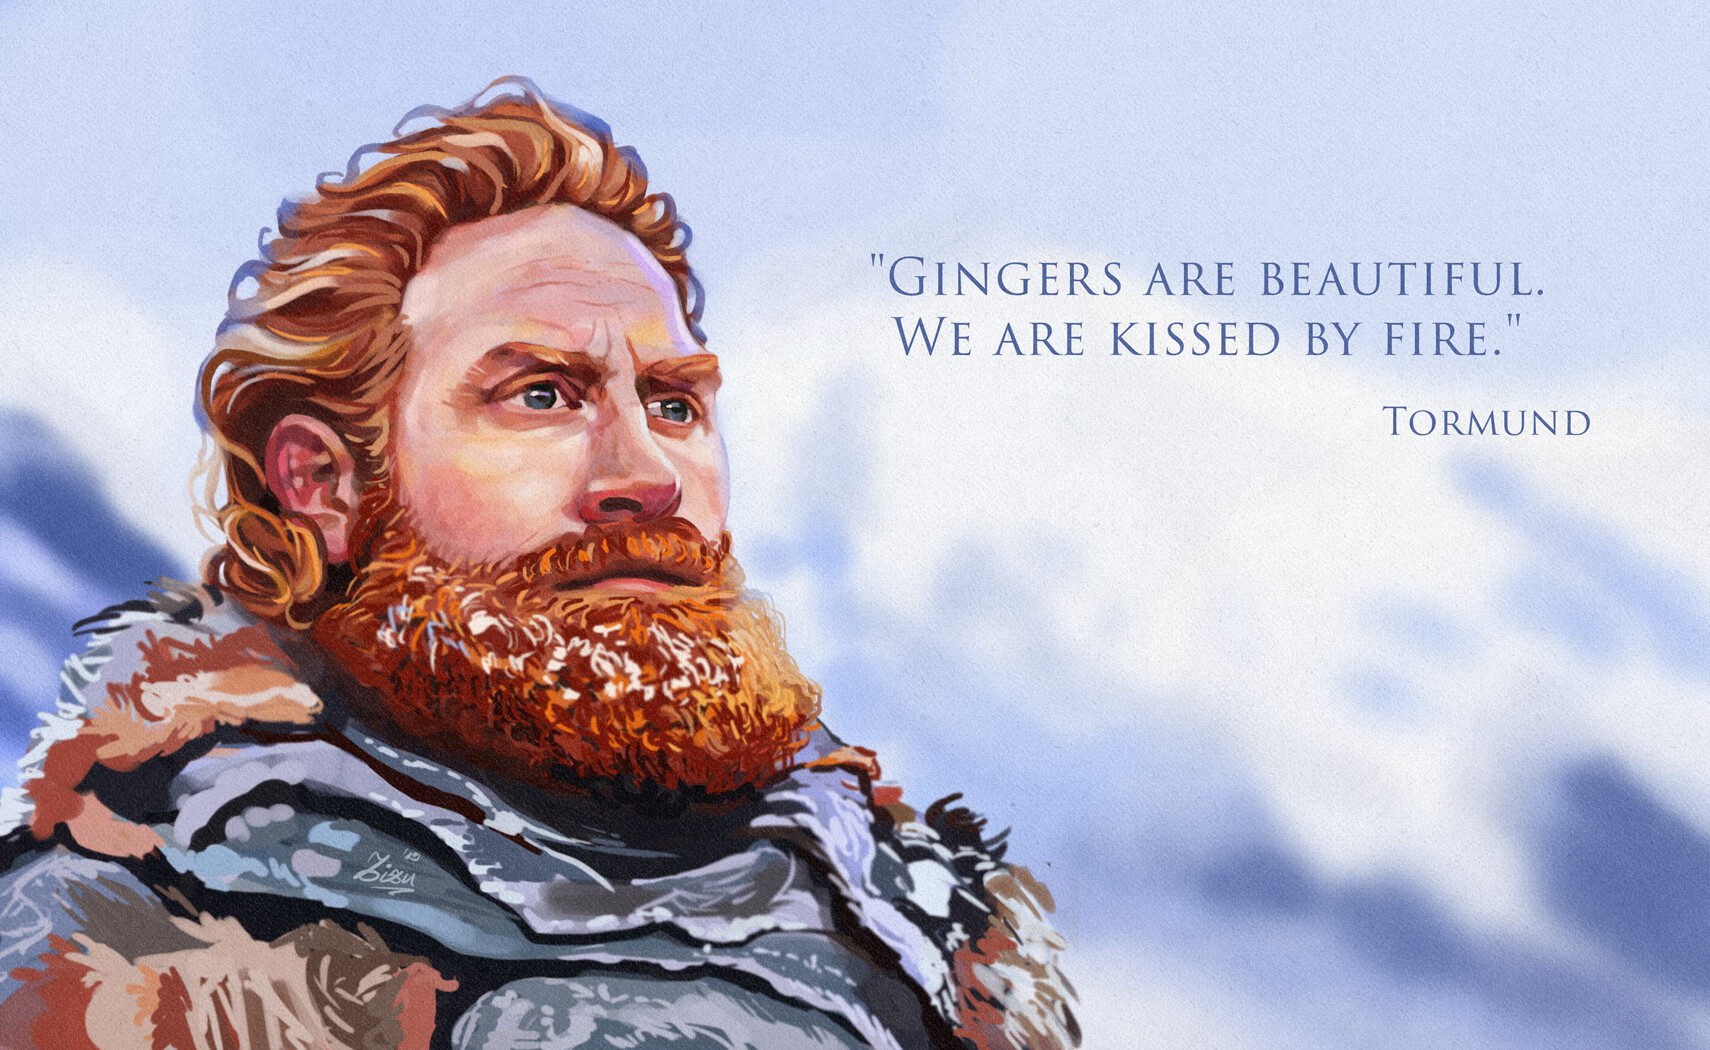 Tormund Giantsbane - quote